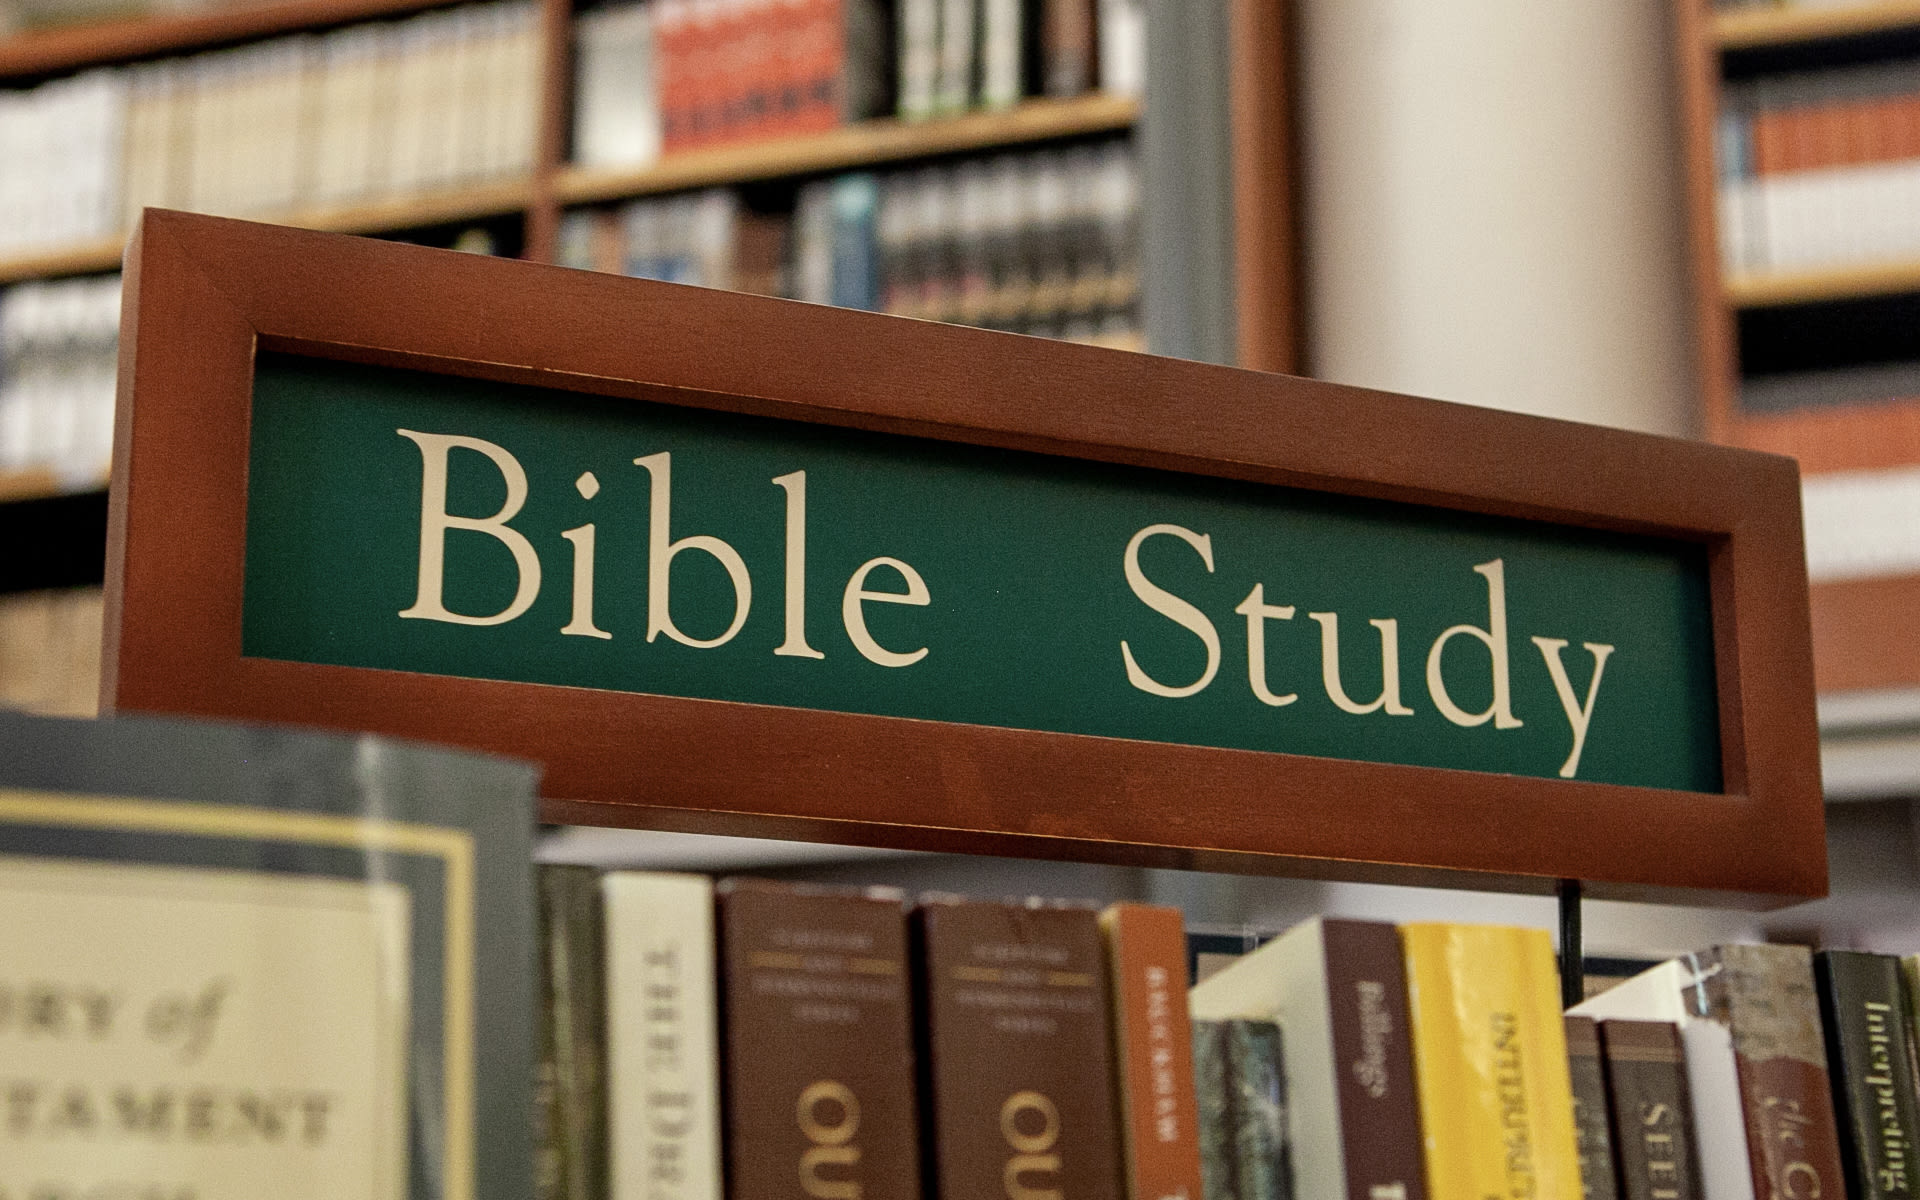 Bible study sign in bookstore